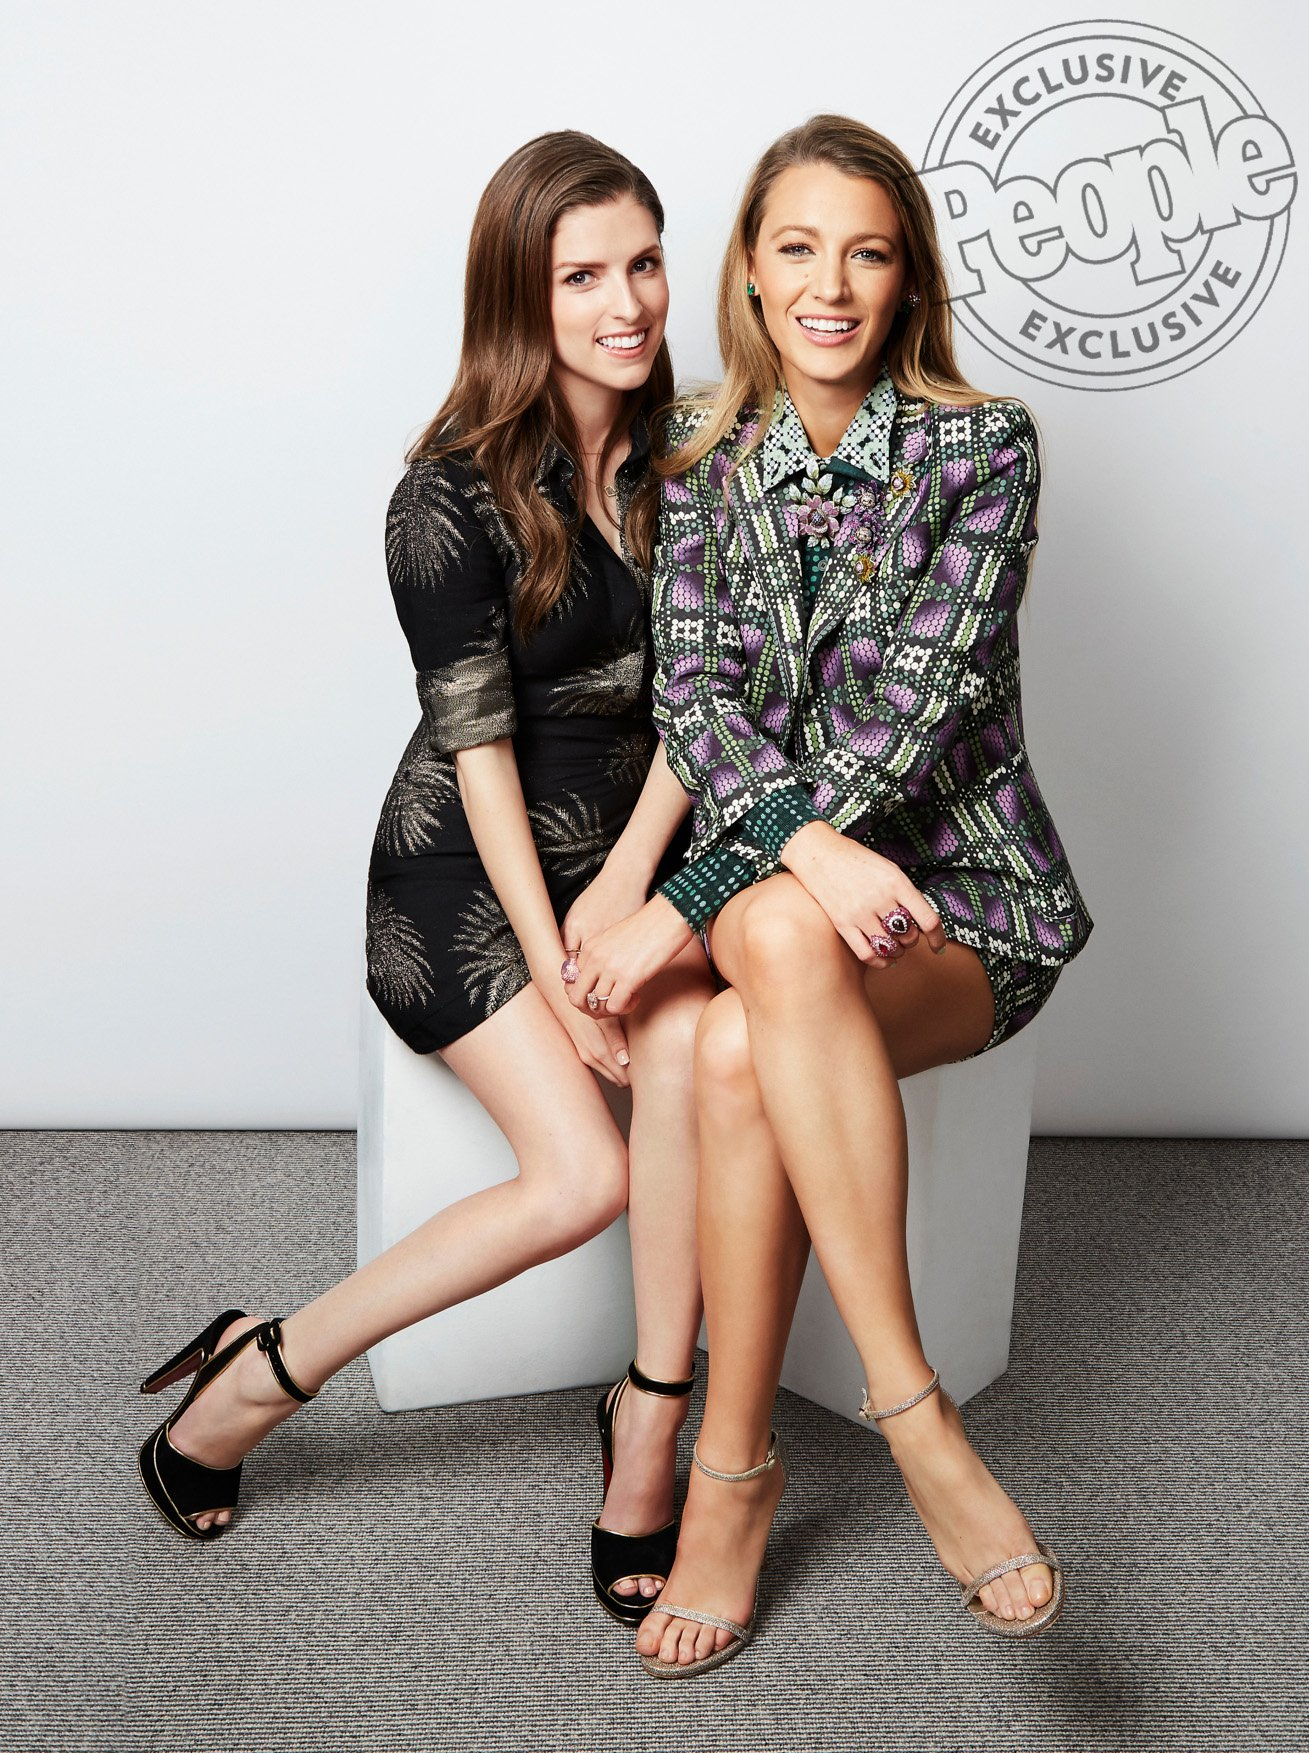 Anna Kendrick and Blake Lively for People Magazine.jpg